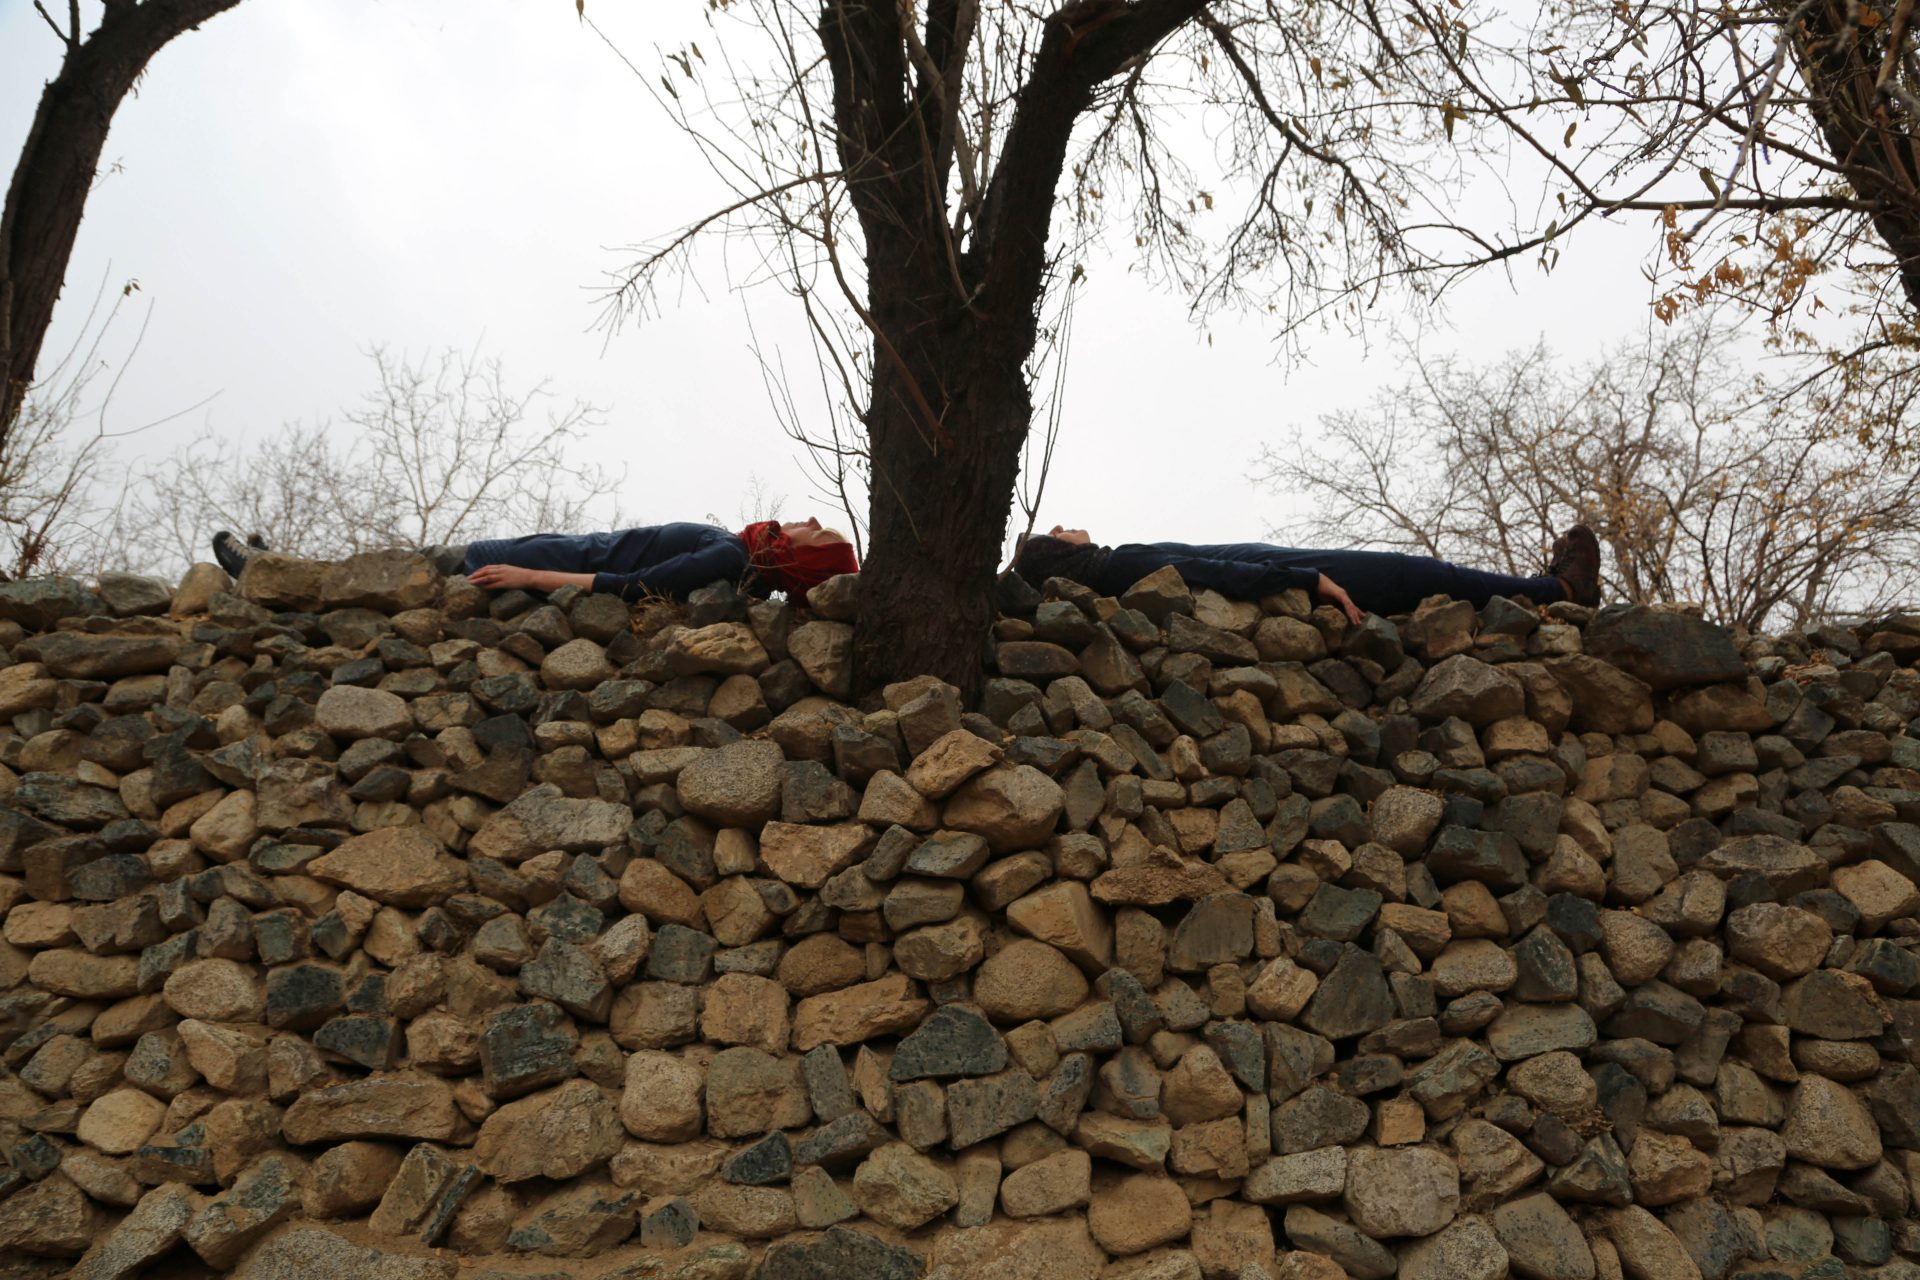 Lying on stone-TaraGoudarzi-KarinvanderMolen-collaboration-AliFarahfardeh_1